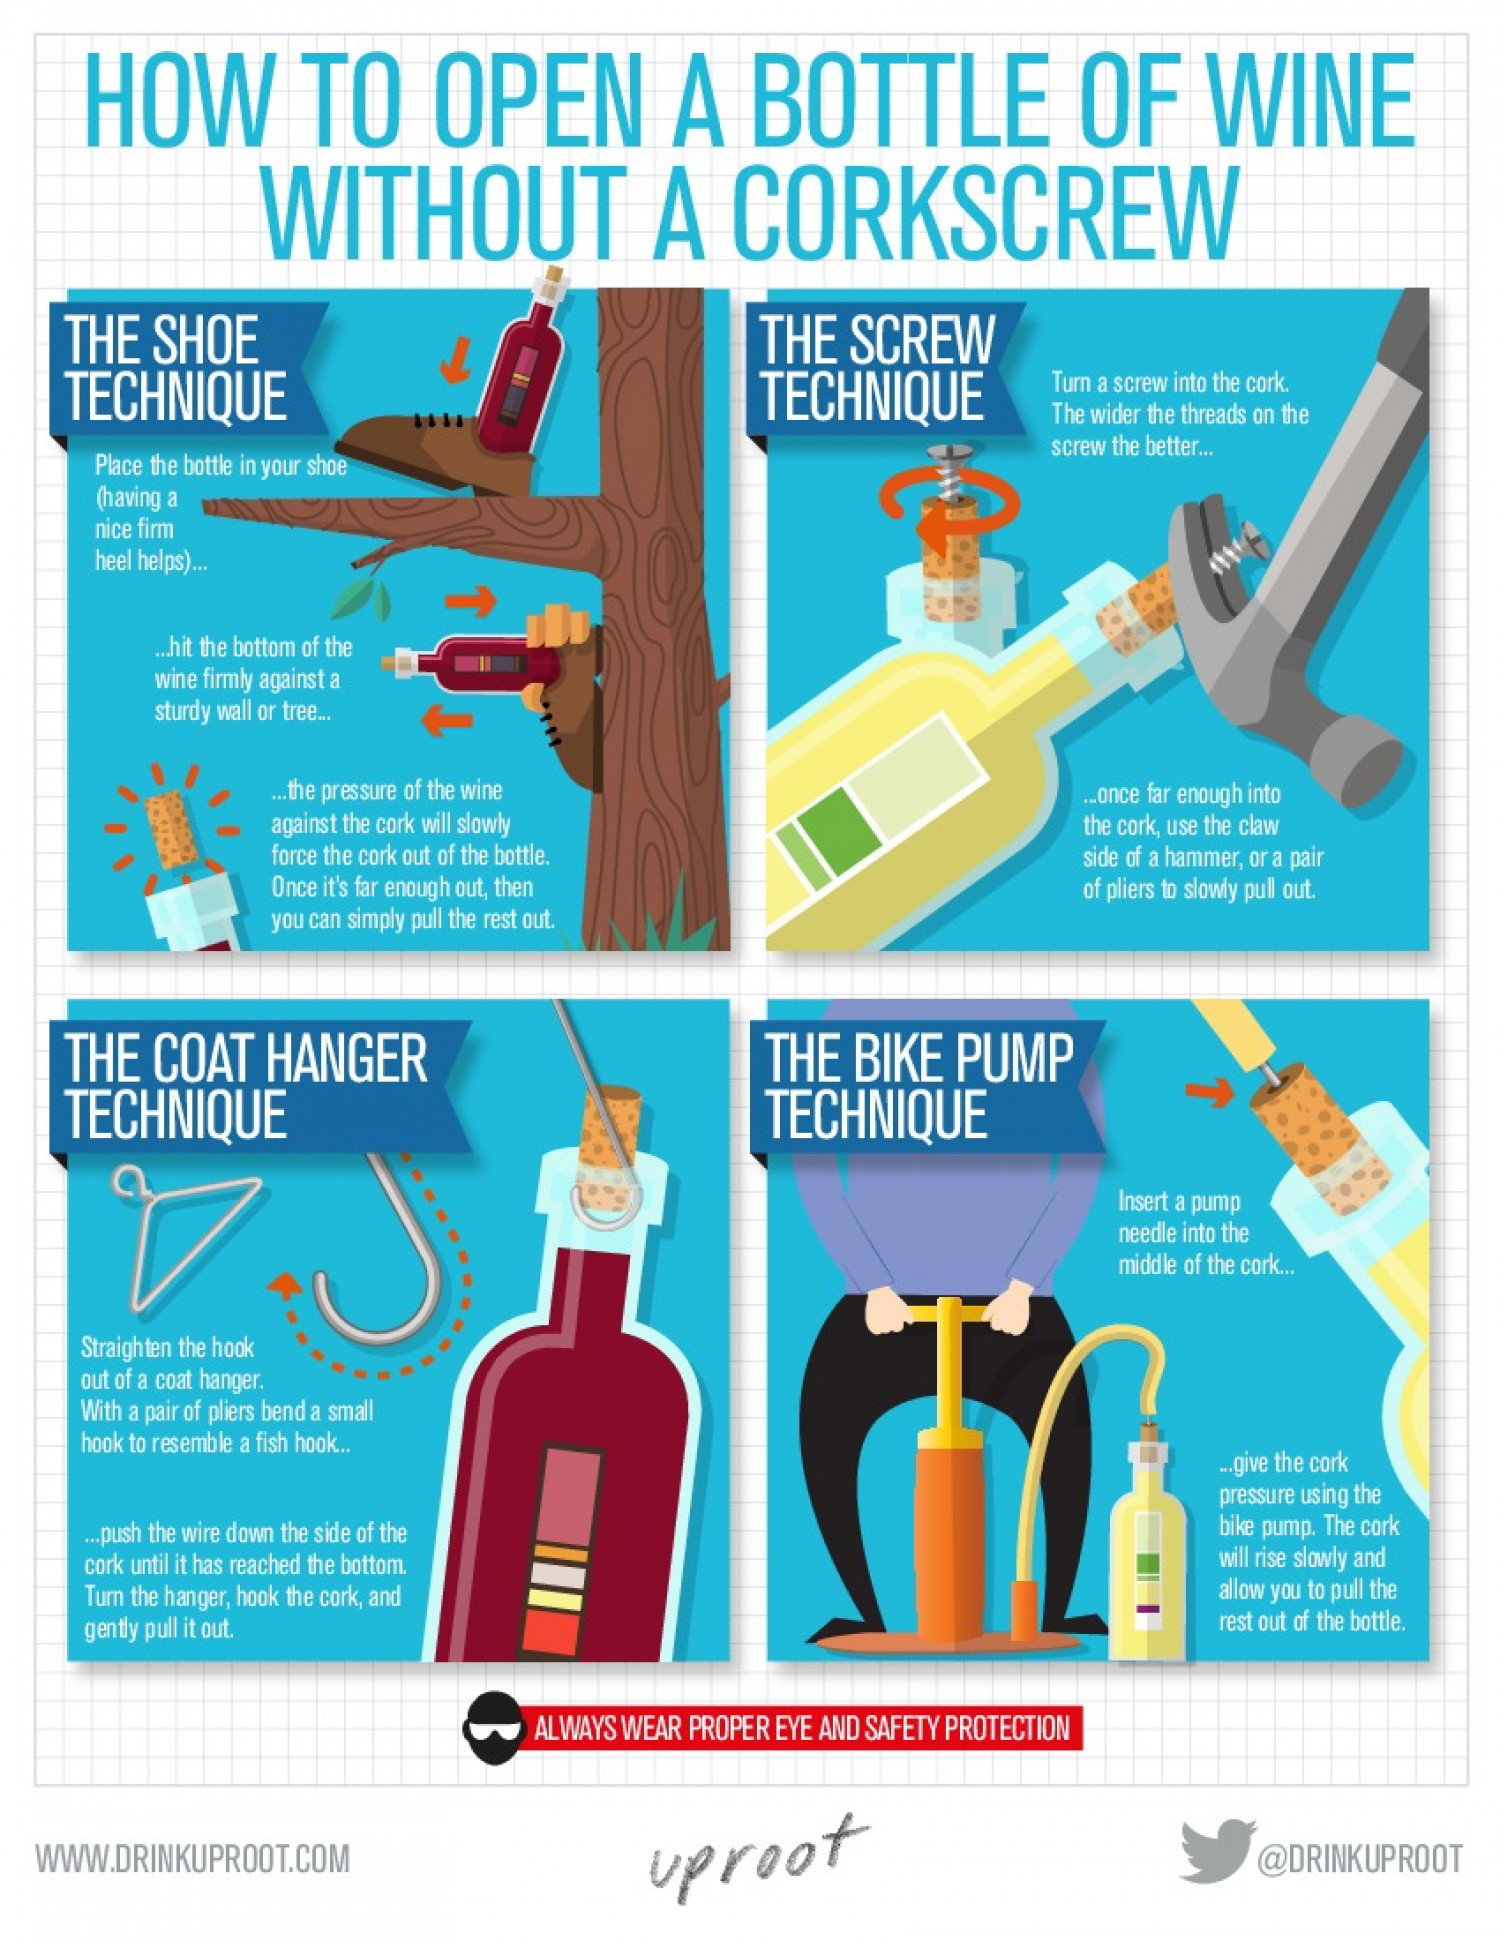 How To Open a Bottle of Wine like MacGyver Infographic